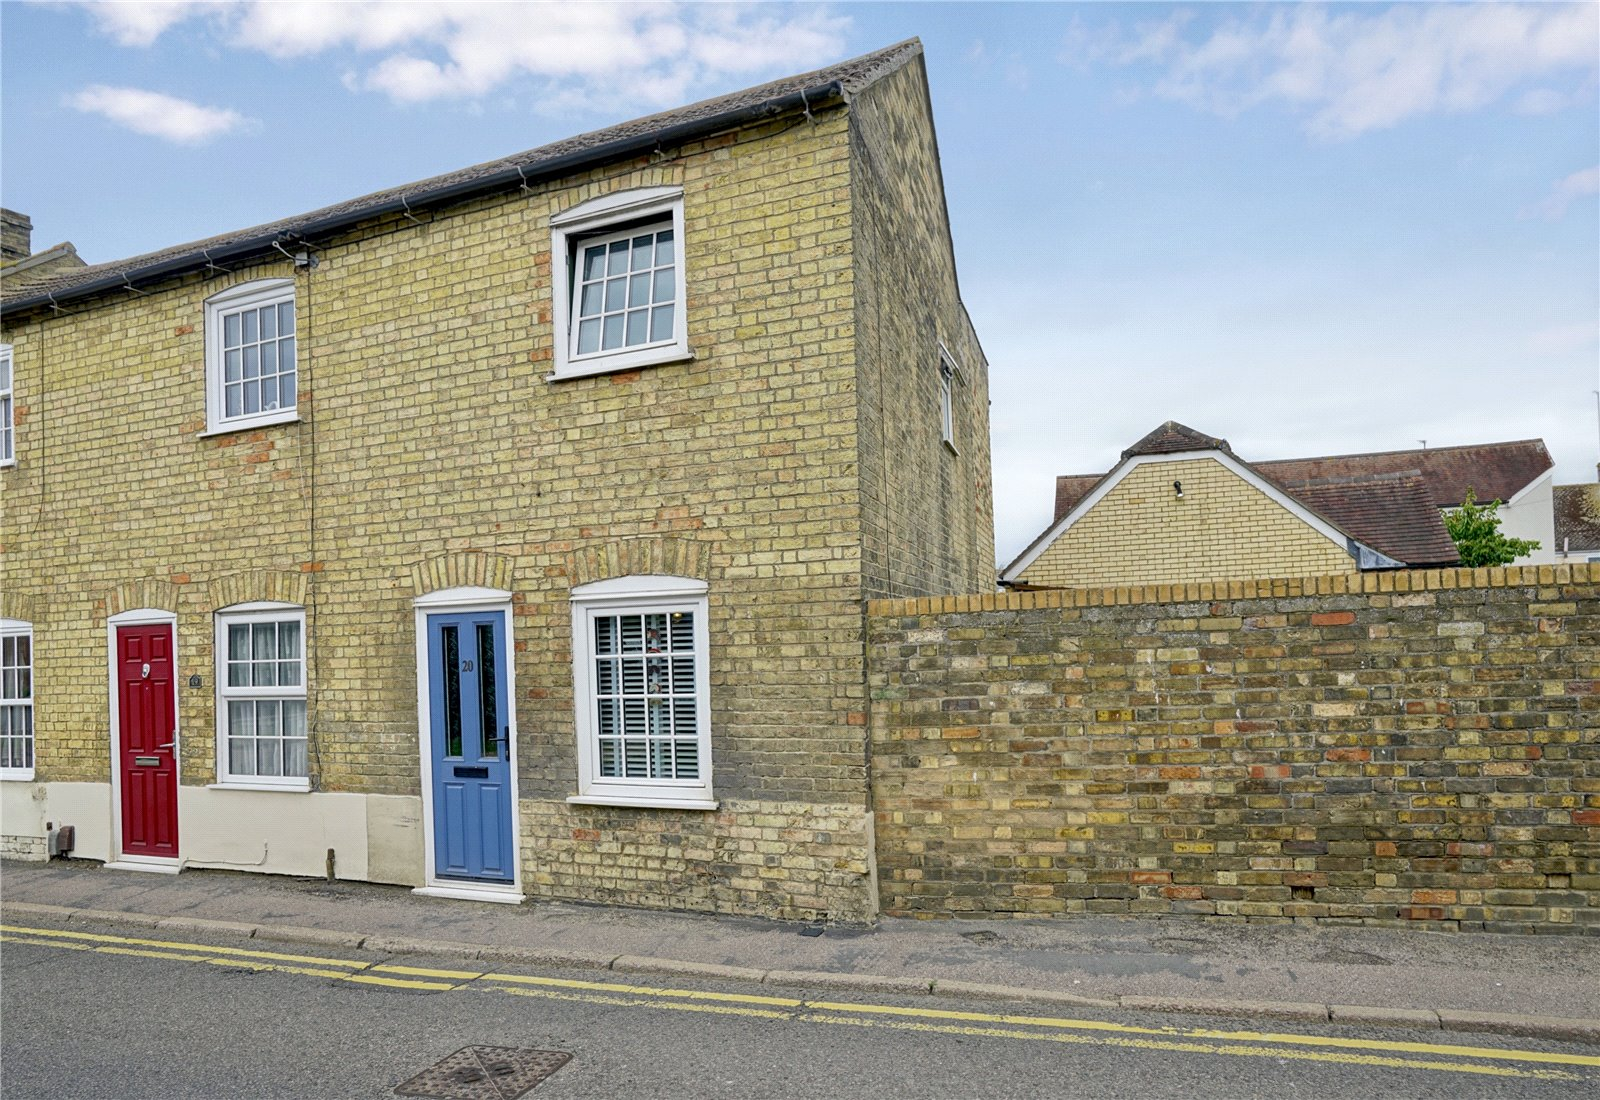 2 bed house for sale in Godmanchester, PE29 2HU  - Property Image 1